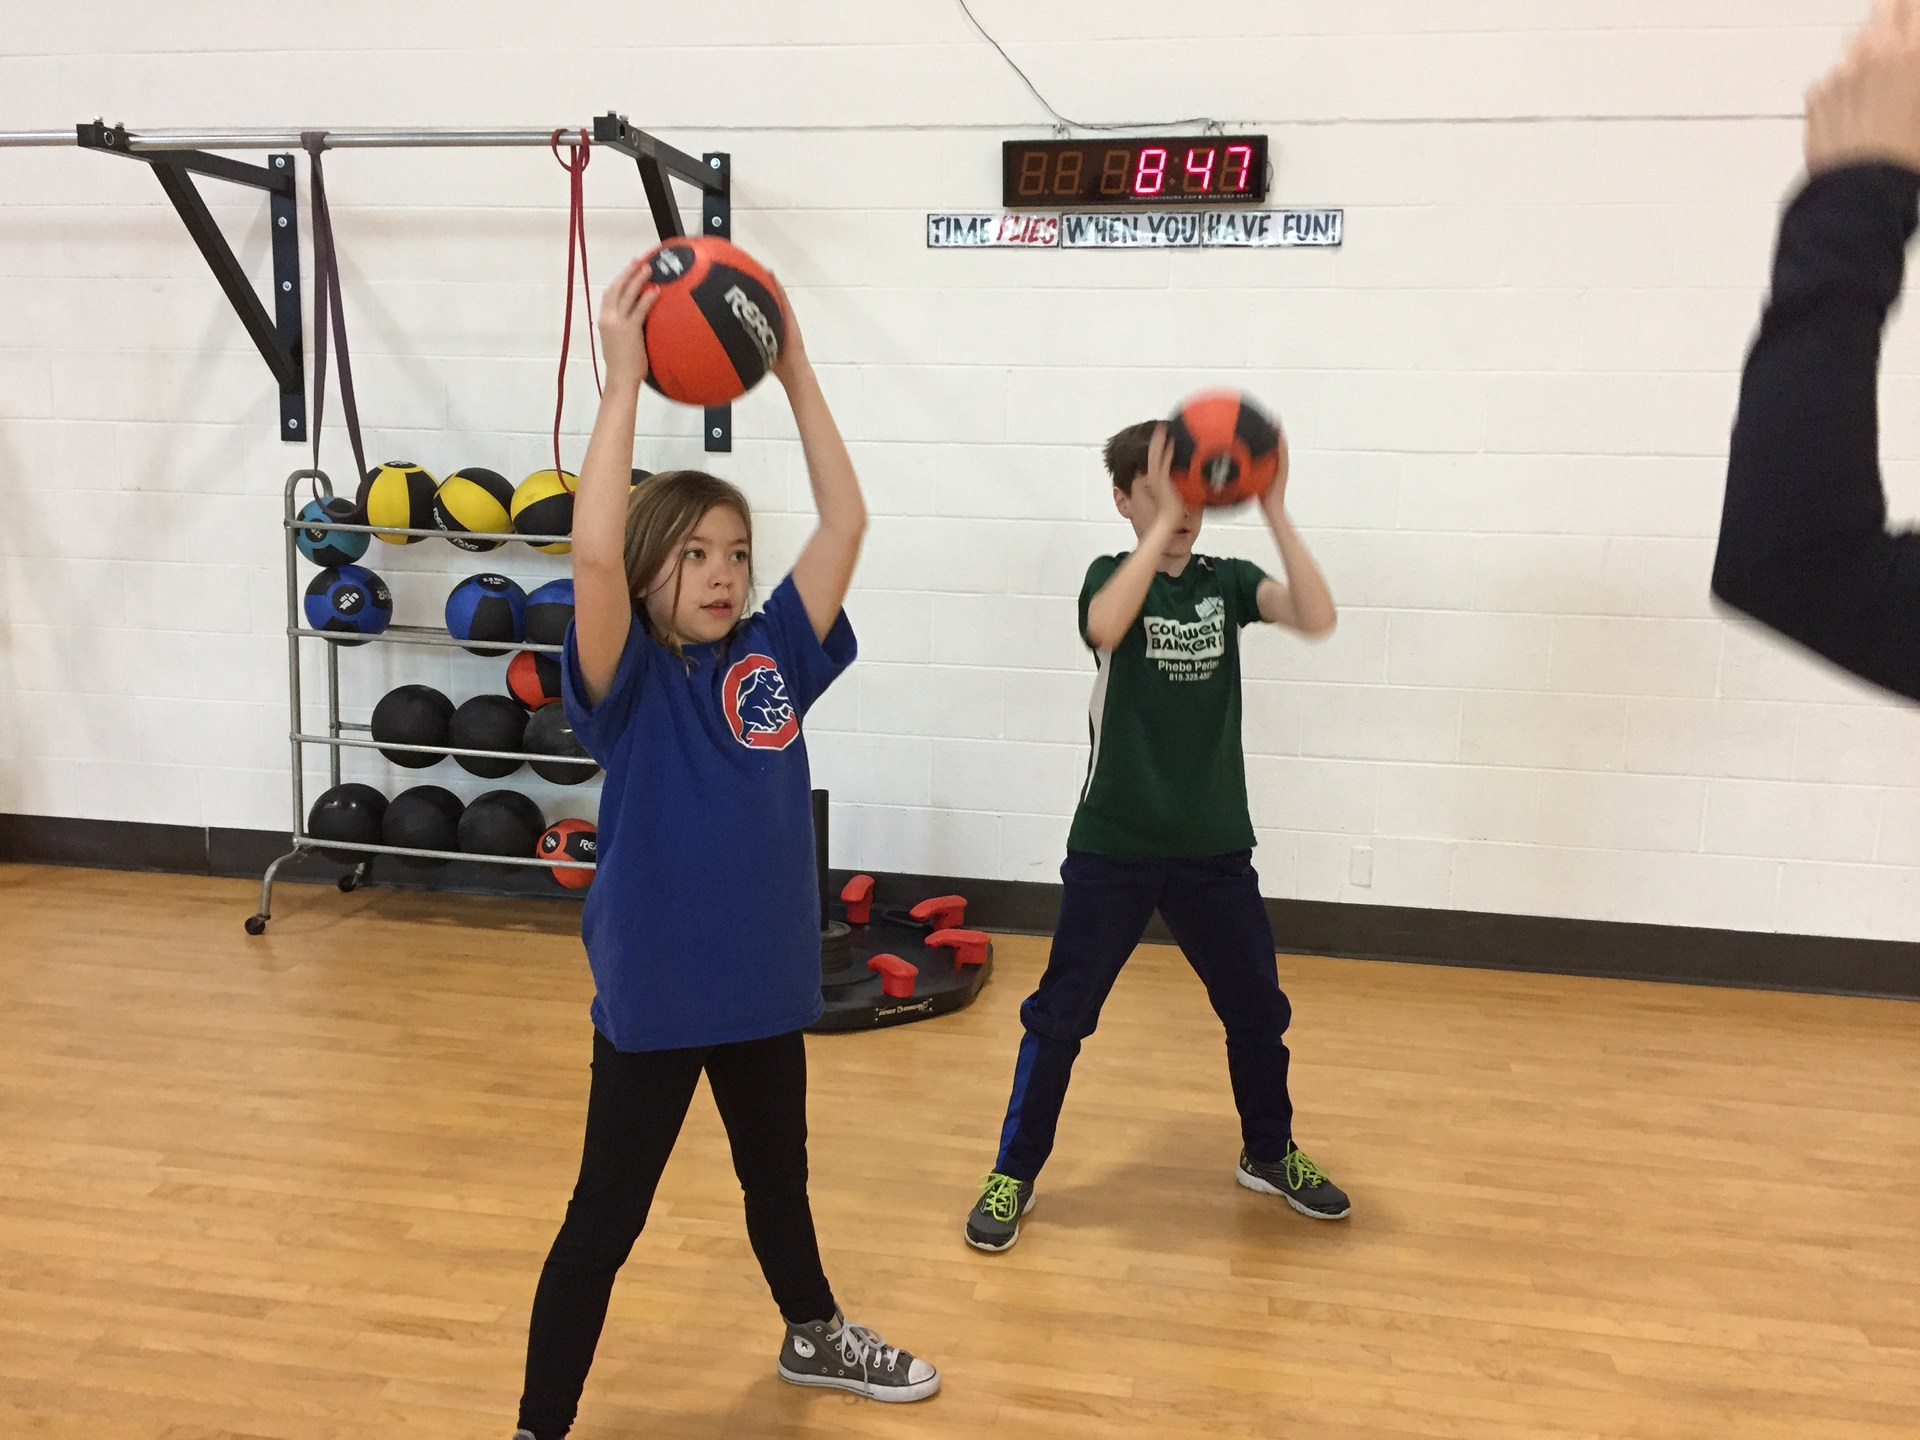 March Monthly Fitness Challenge